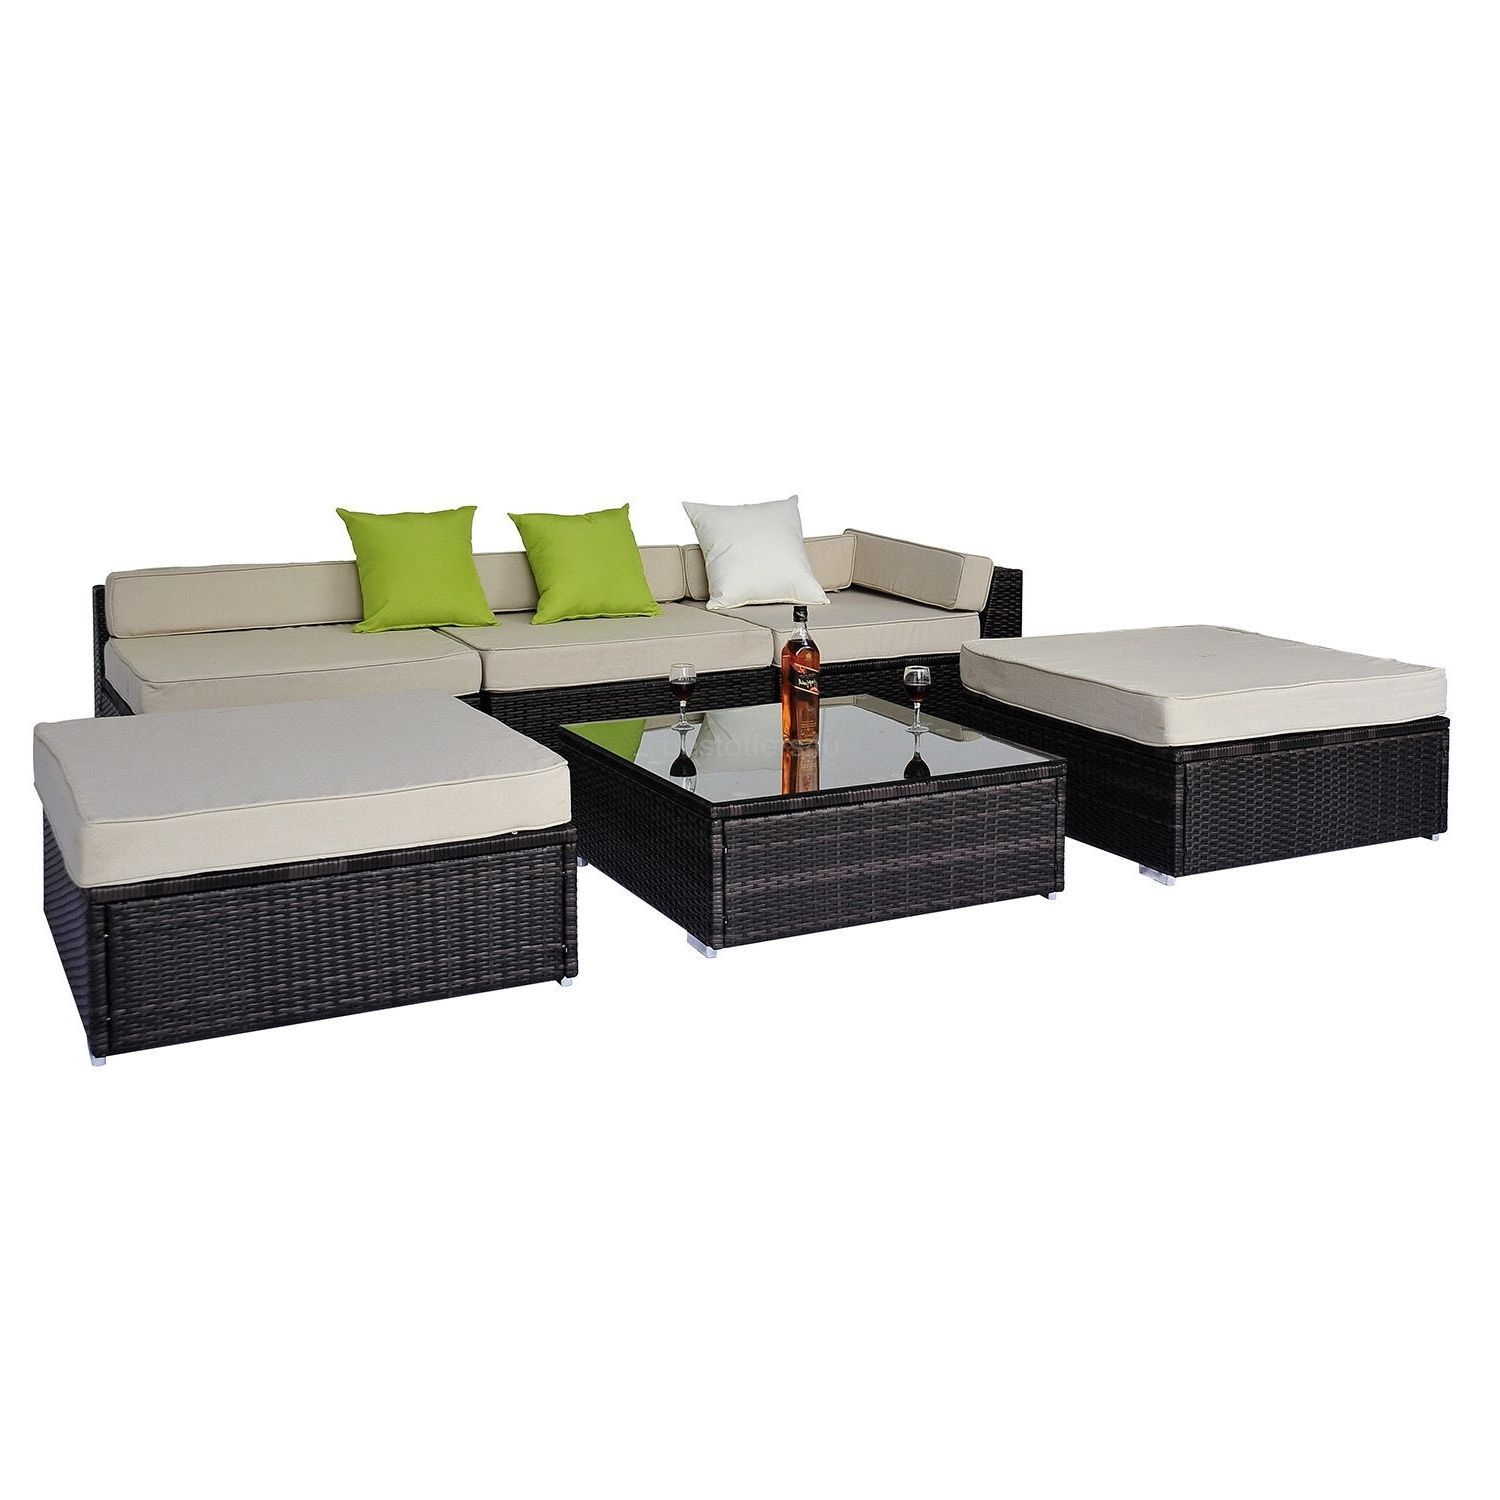 Garden Corner Sofa Rattan Set Luxury Wicker Conservatory Patio Furniture Brown image 1